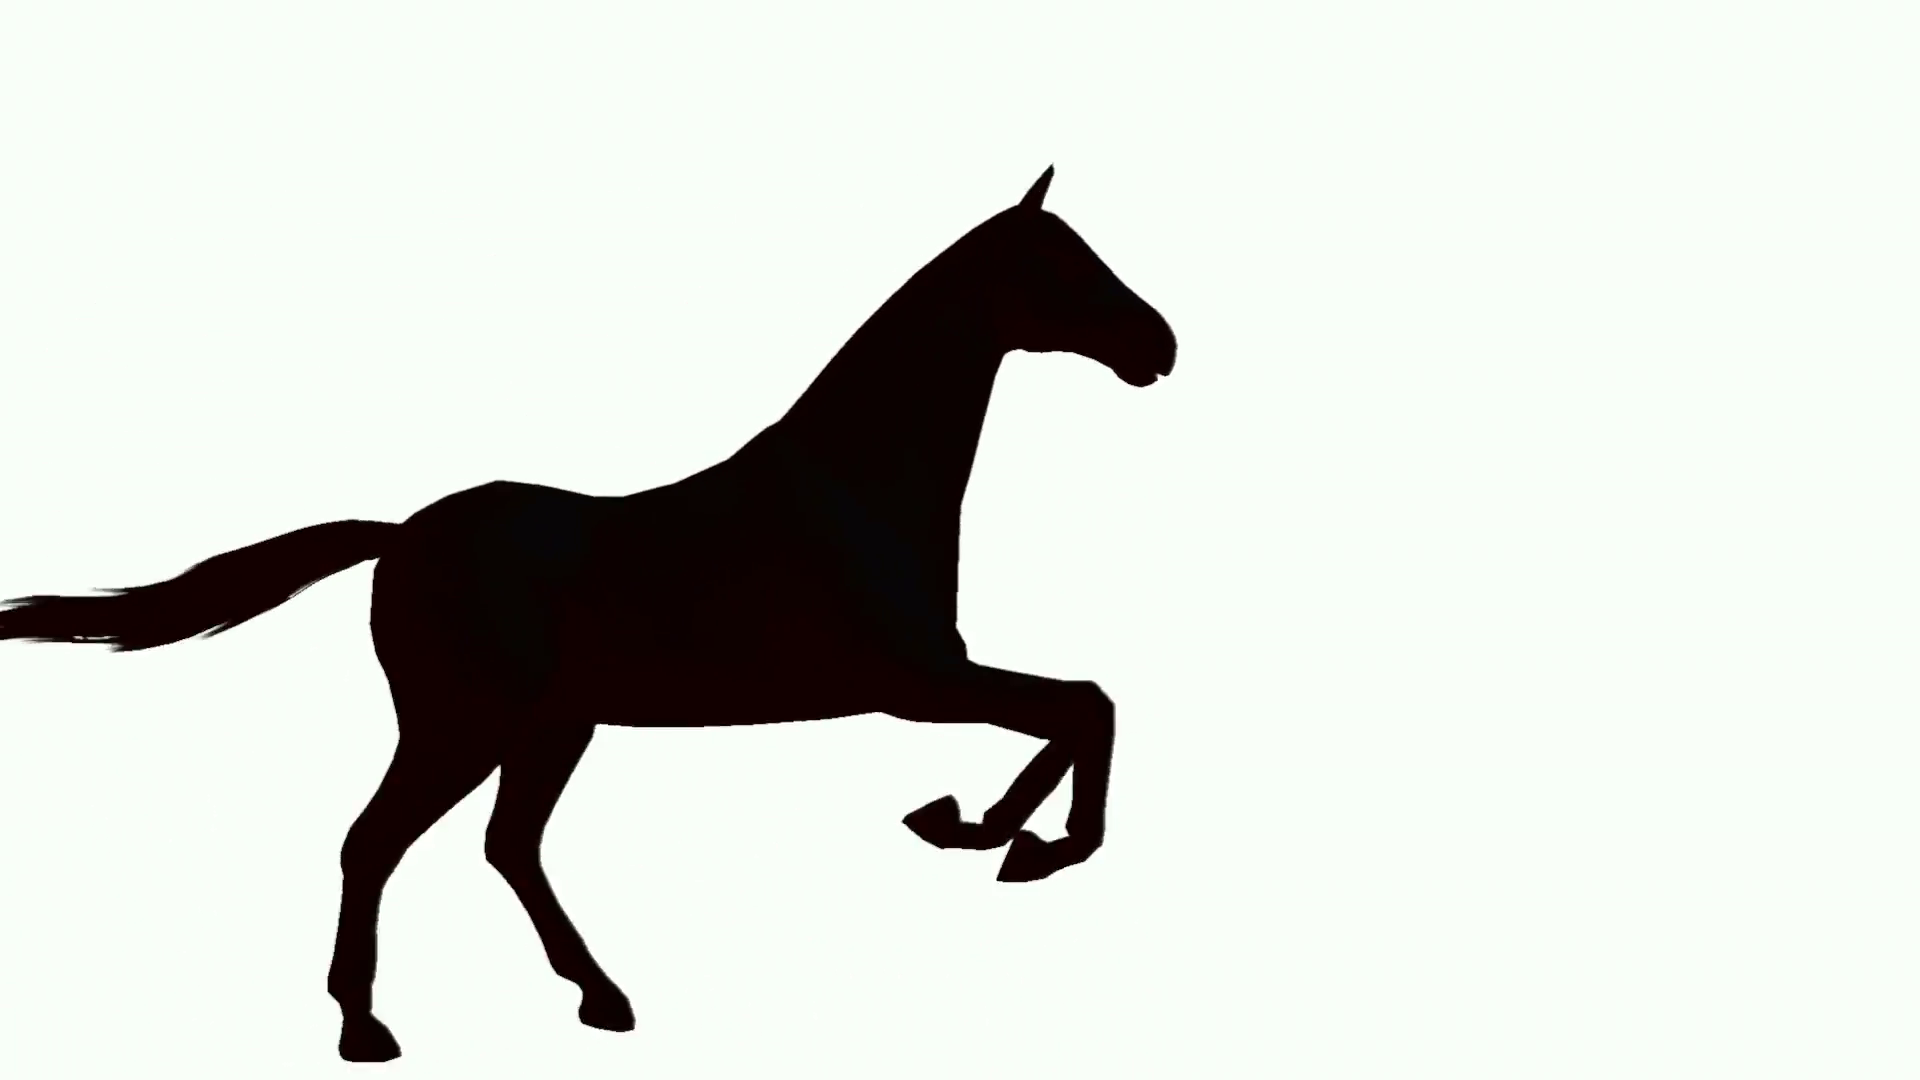 1920x1080 Silhouette Of Horse Galloping Across The Screen Motion Background